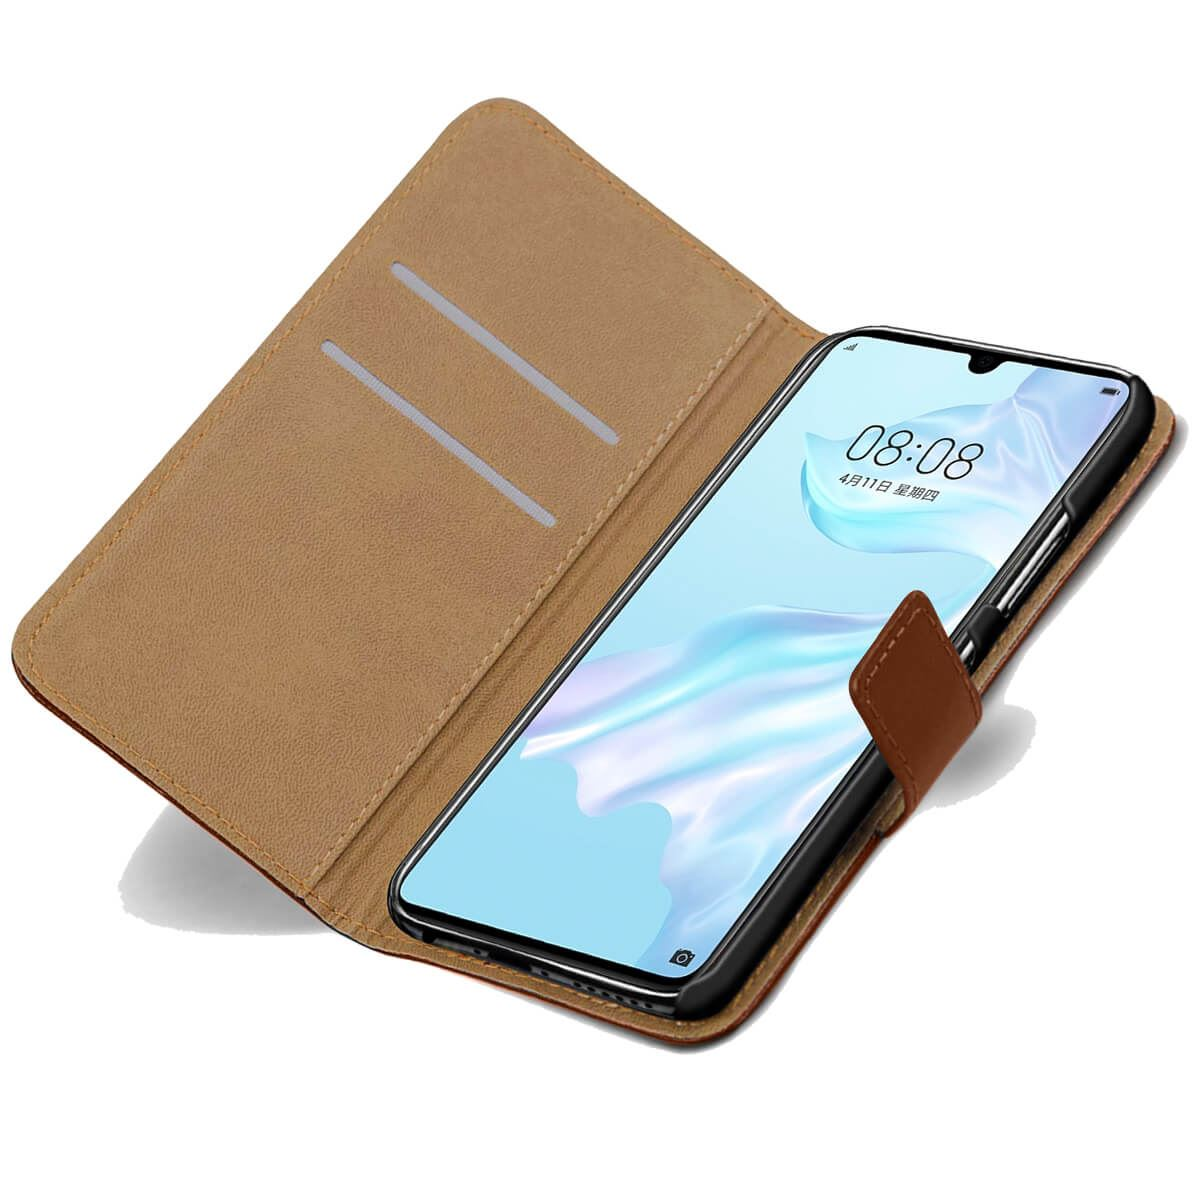 Flip-Cover-For-Huawei-P30-Lite-Pro-Leather-Wallet-Style-With-Magnetic-Closure thumbnail 5